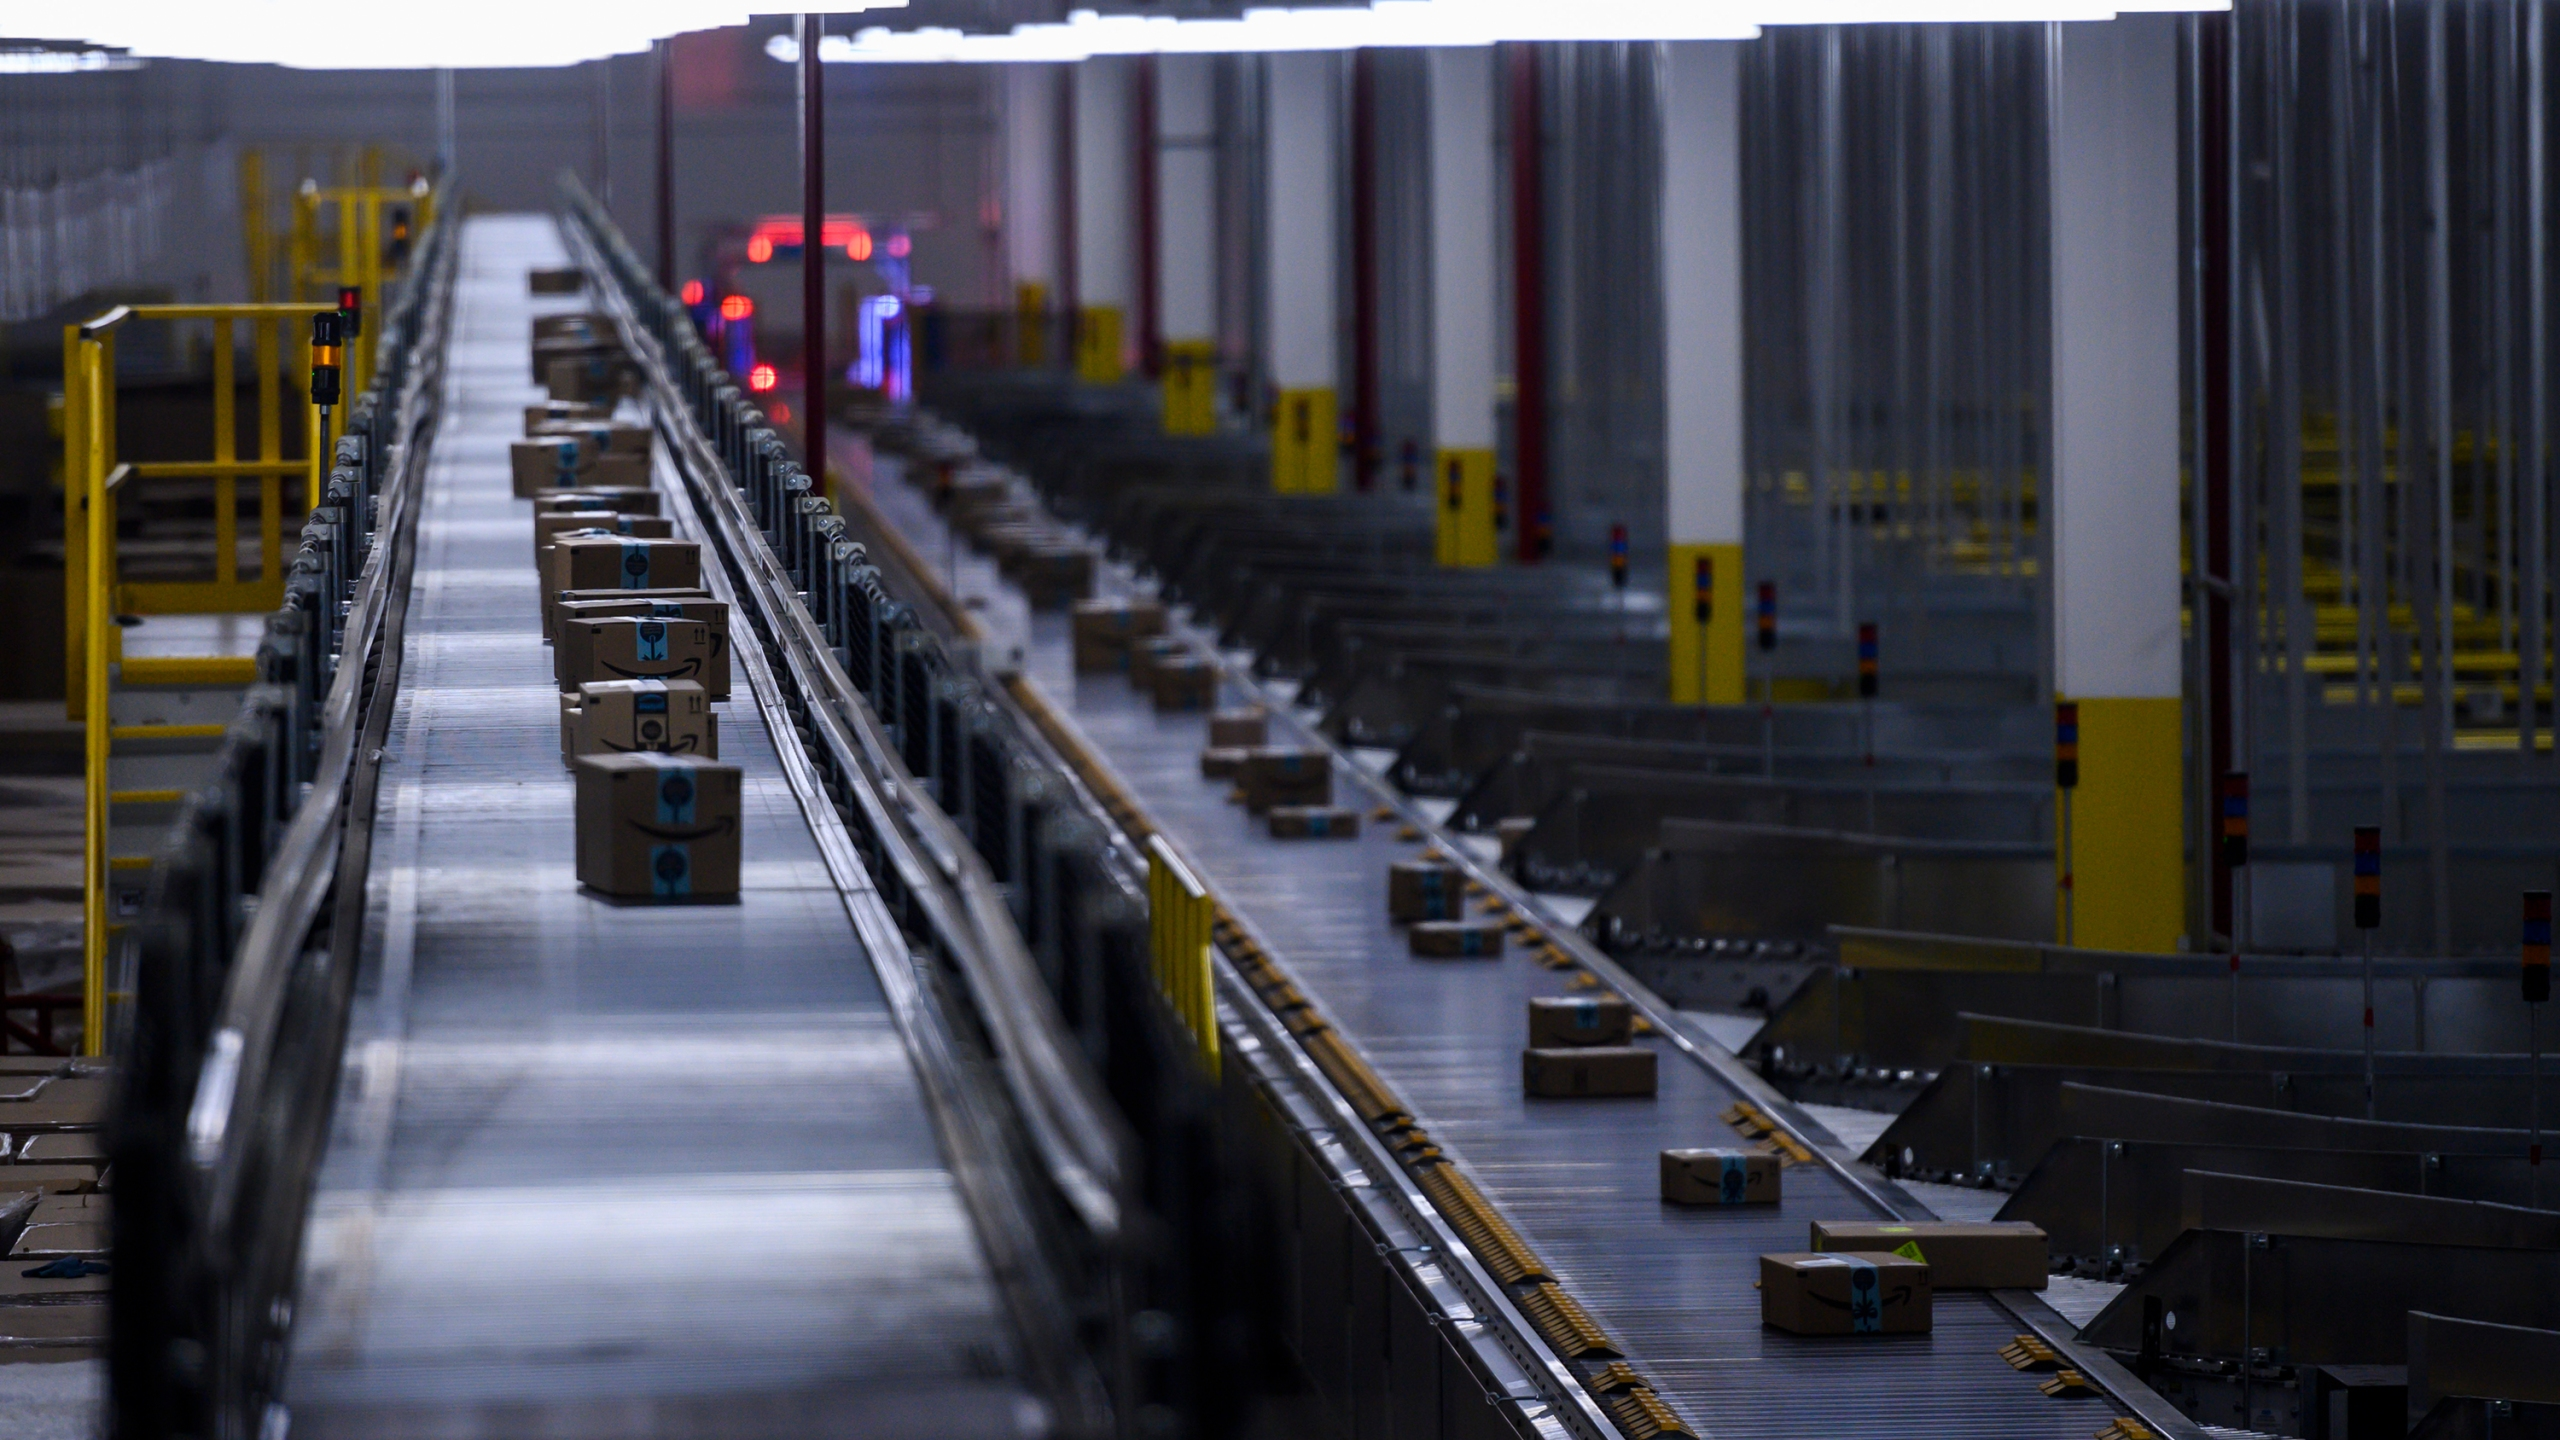 Orders move down a conveyor belt at the 855,000-square-foot Amazon fulfillment center in Staten Island, one of the five boroughs of New York City, on Feb. 5, 2019. (Johannes Eisele/AFP via Getty Images)